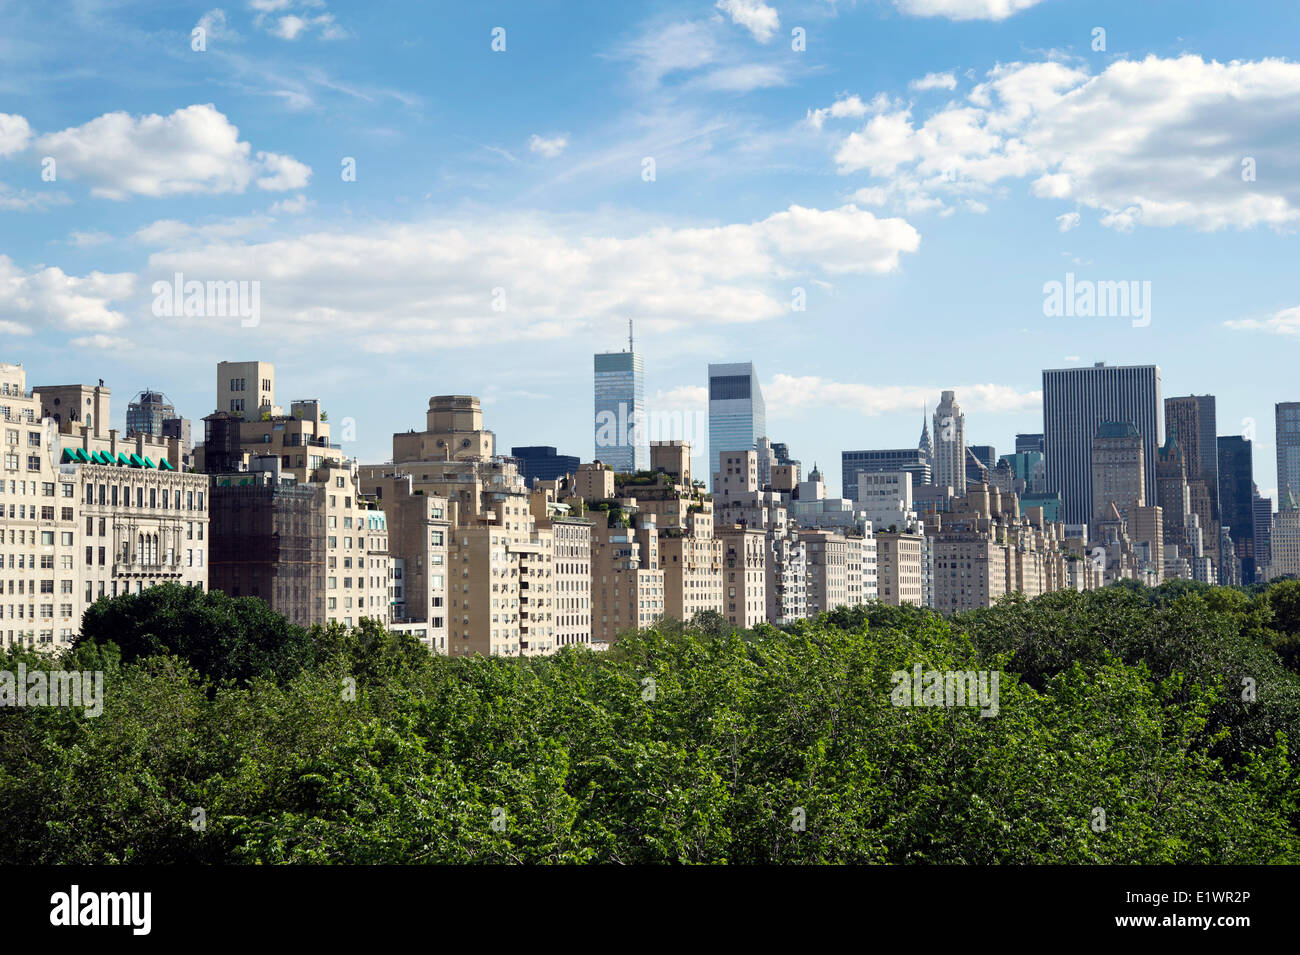 New York City skyline seen from the rooftop terrace of the Metropolitain Museum across Central Park - Stock Image